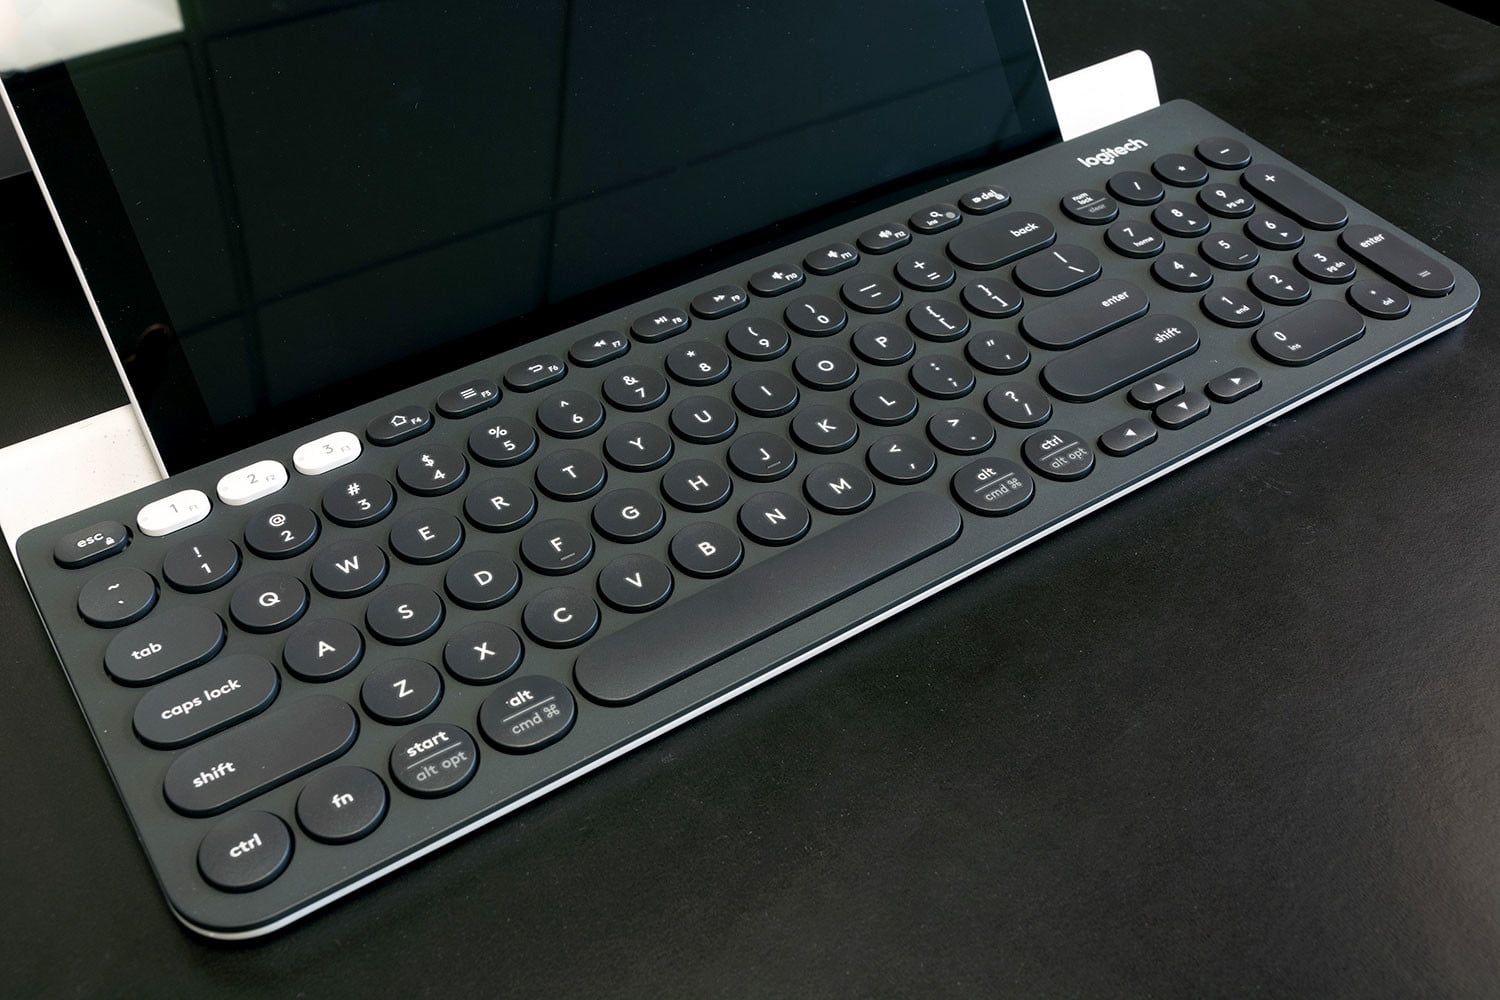 the best wireless keyboards for windows 10 mac ios and android digital trends. Black Bedroom Furniture Sets. Home Design Ideas